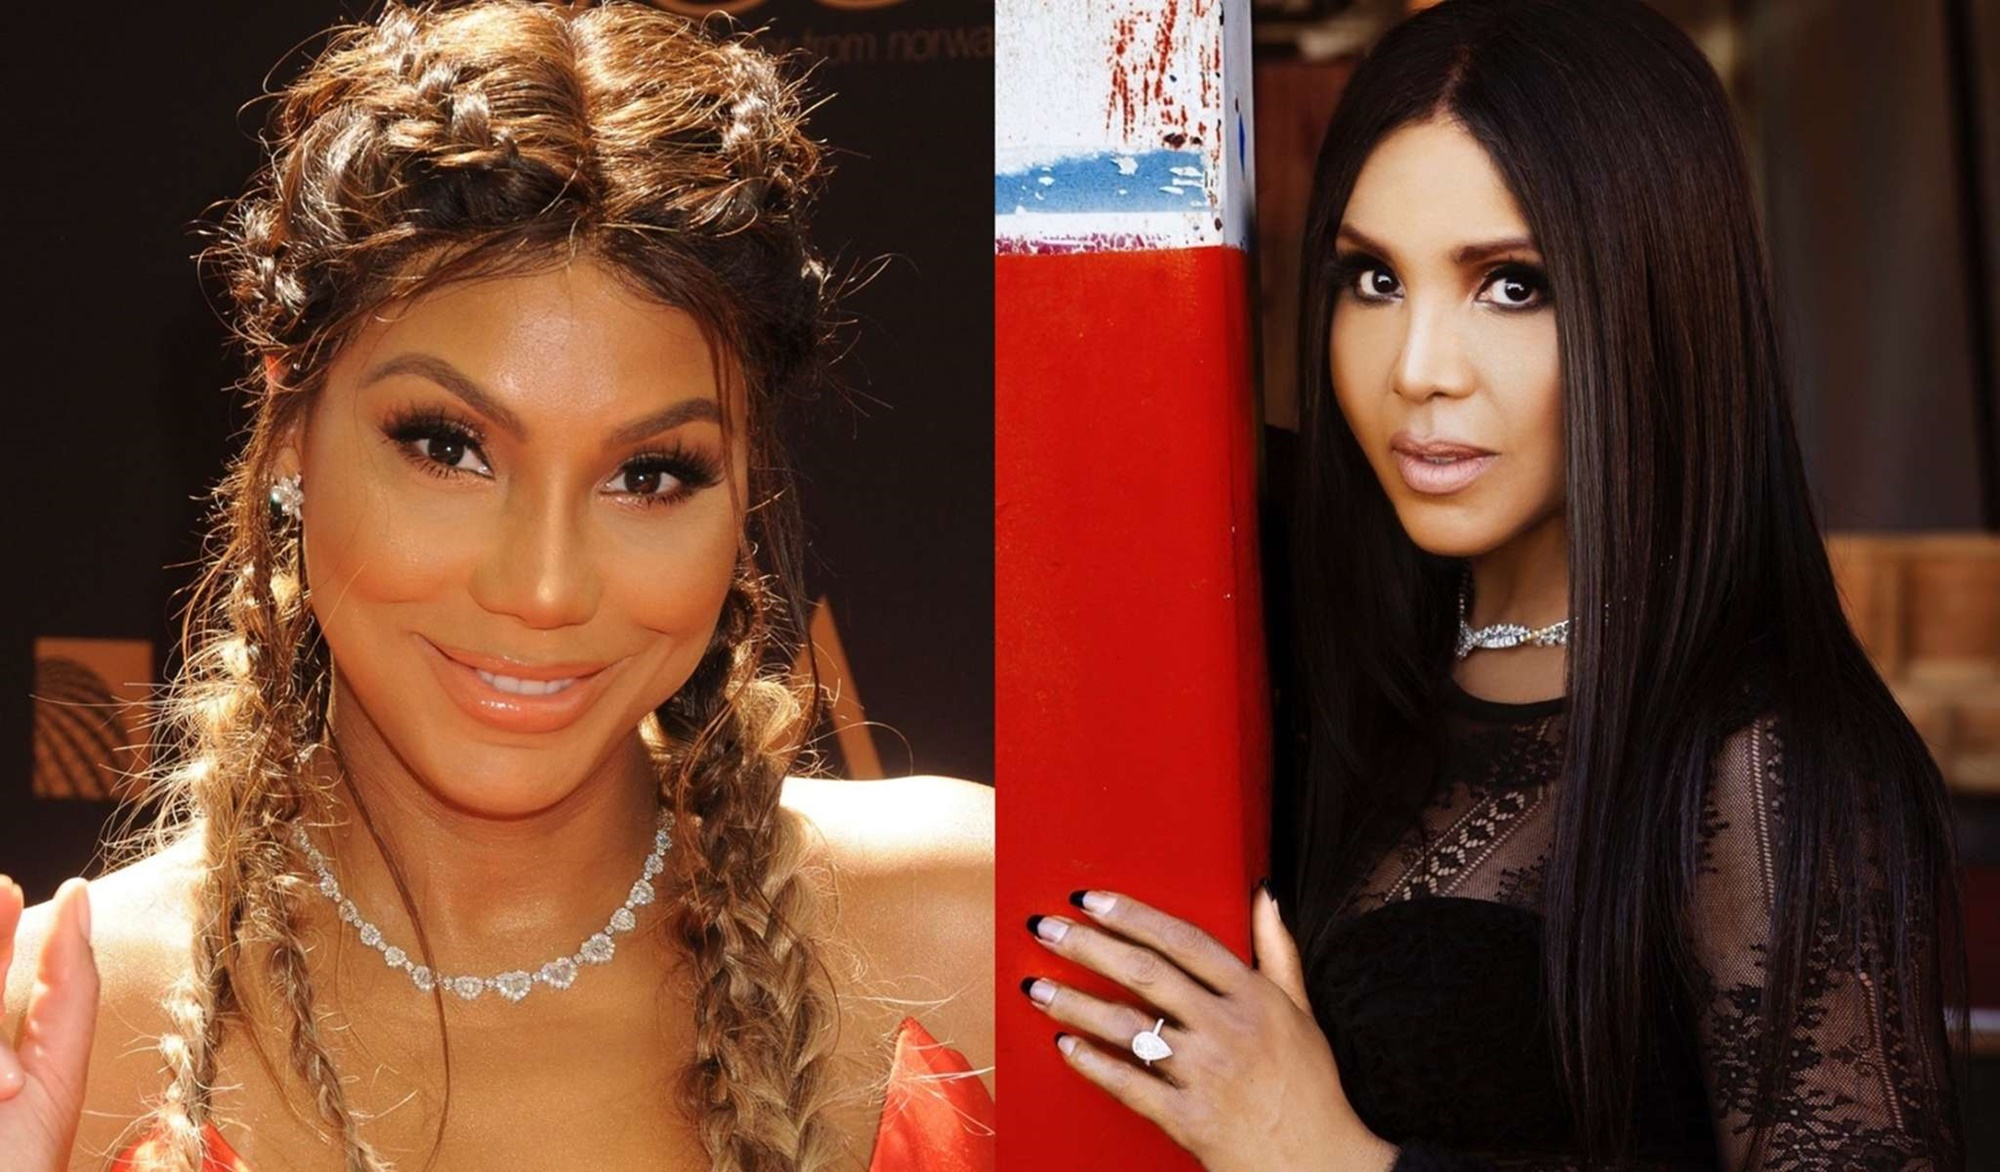 toni-braxton-shares-video-of-tamar-frying-chicken-in-the-bathroom-see-why-some-fans-are-disgusted-by-david-adefesos-girlfriend-improvised-kitchen